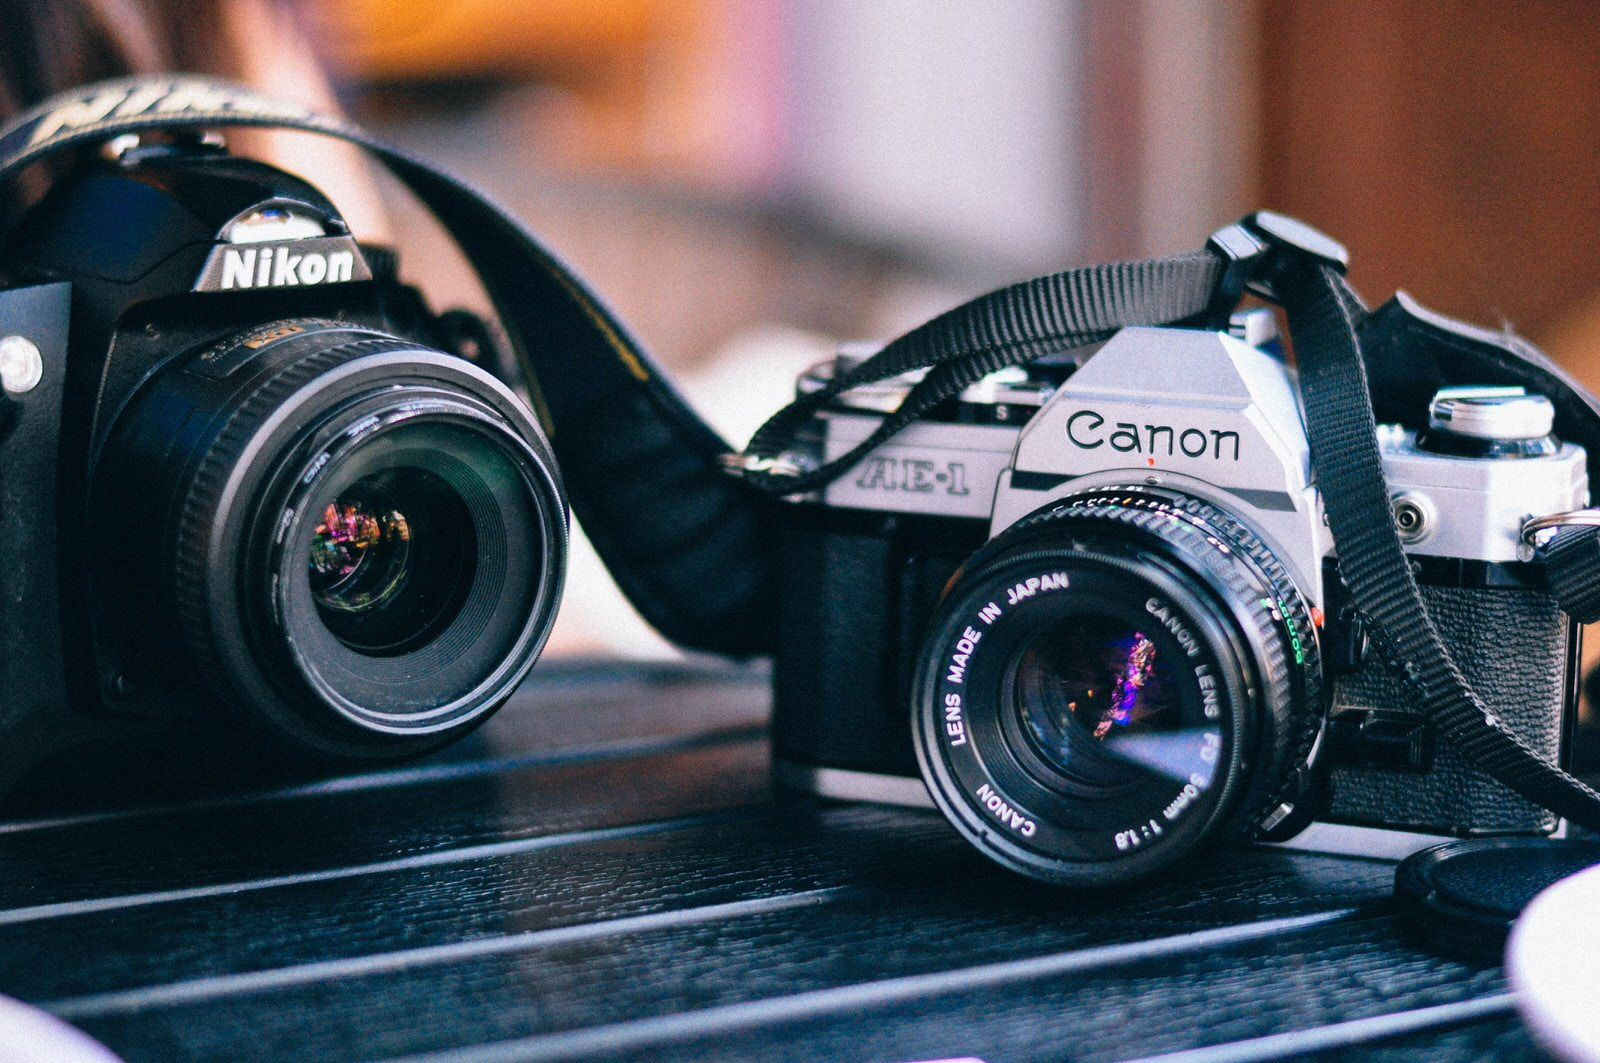 travelshare.gr nicon canon dslr photography tips